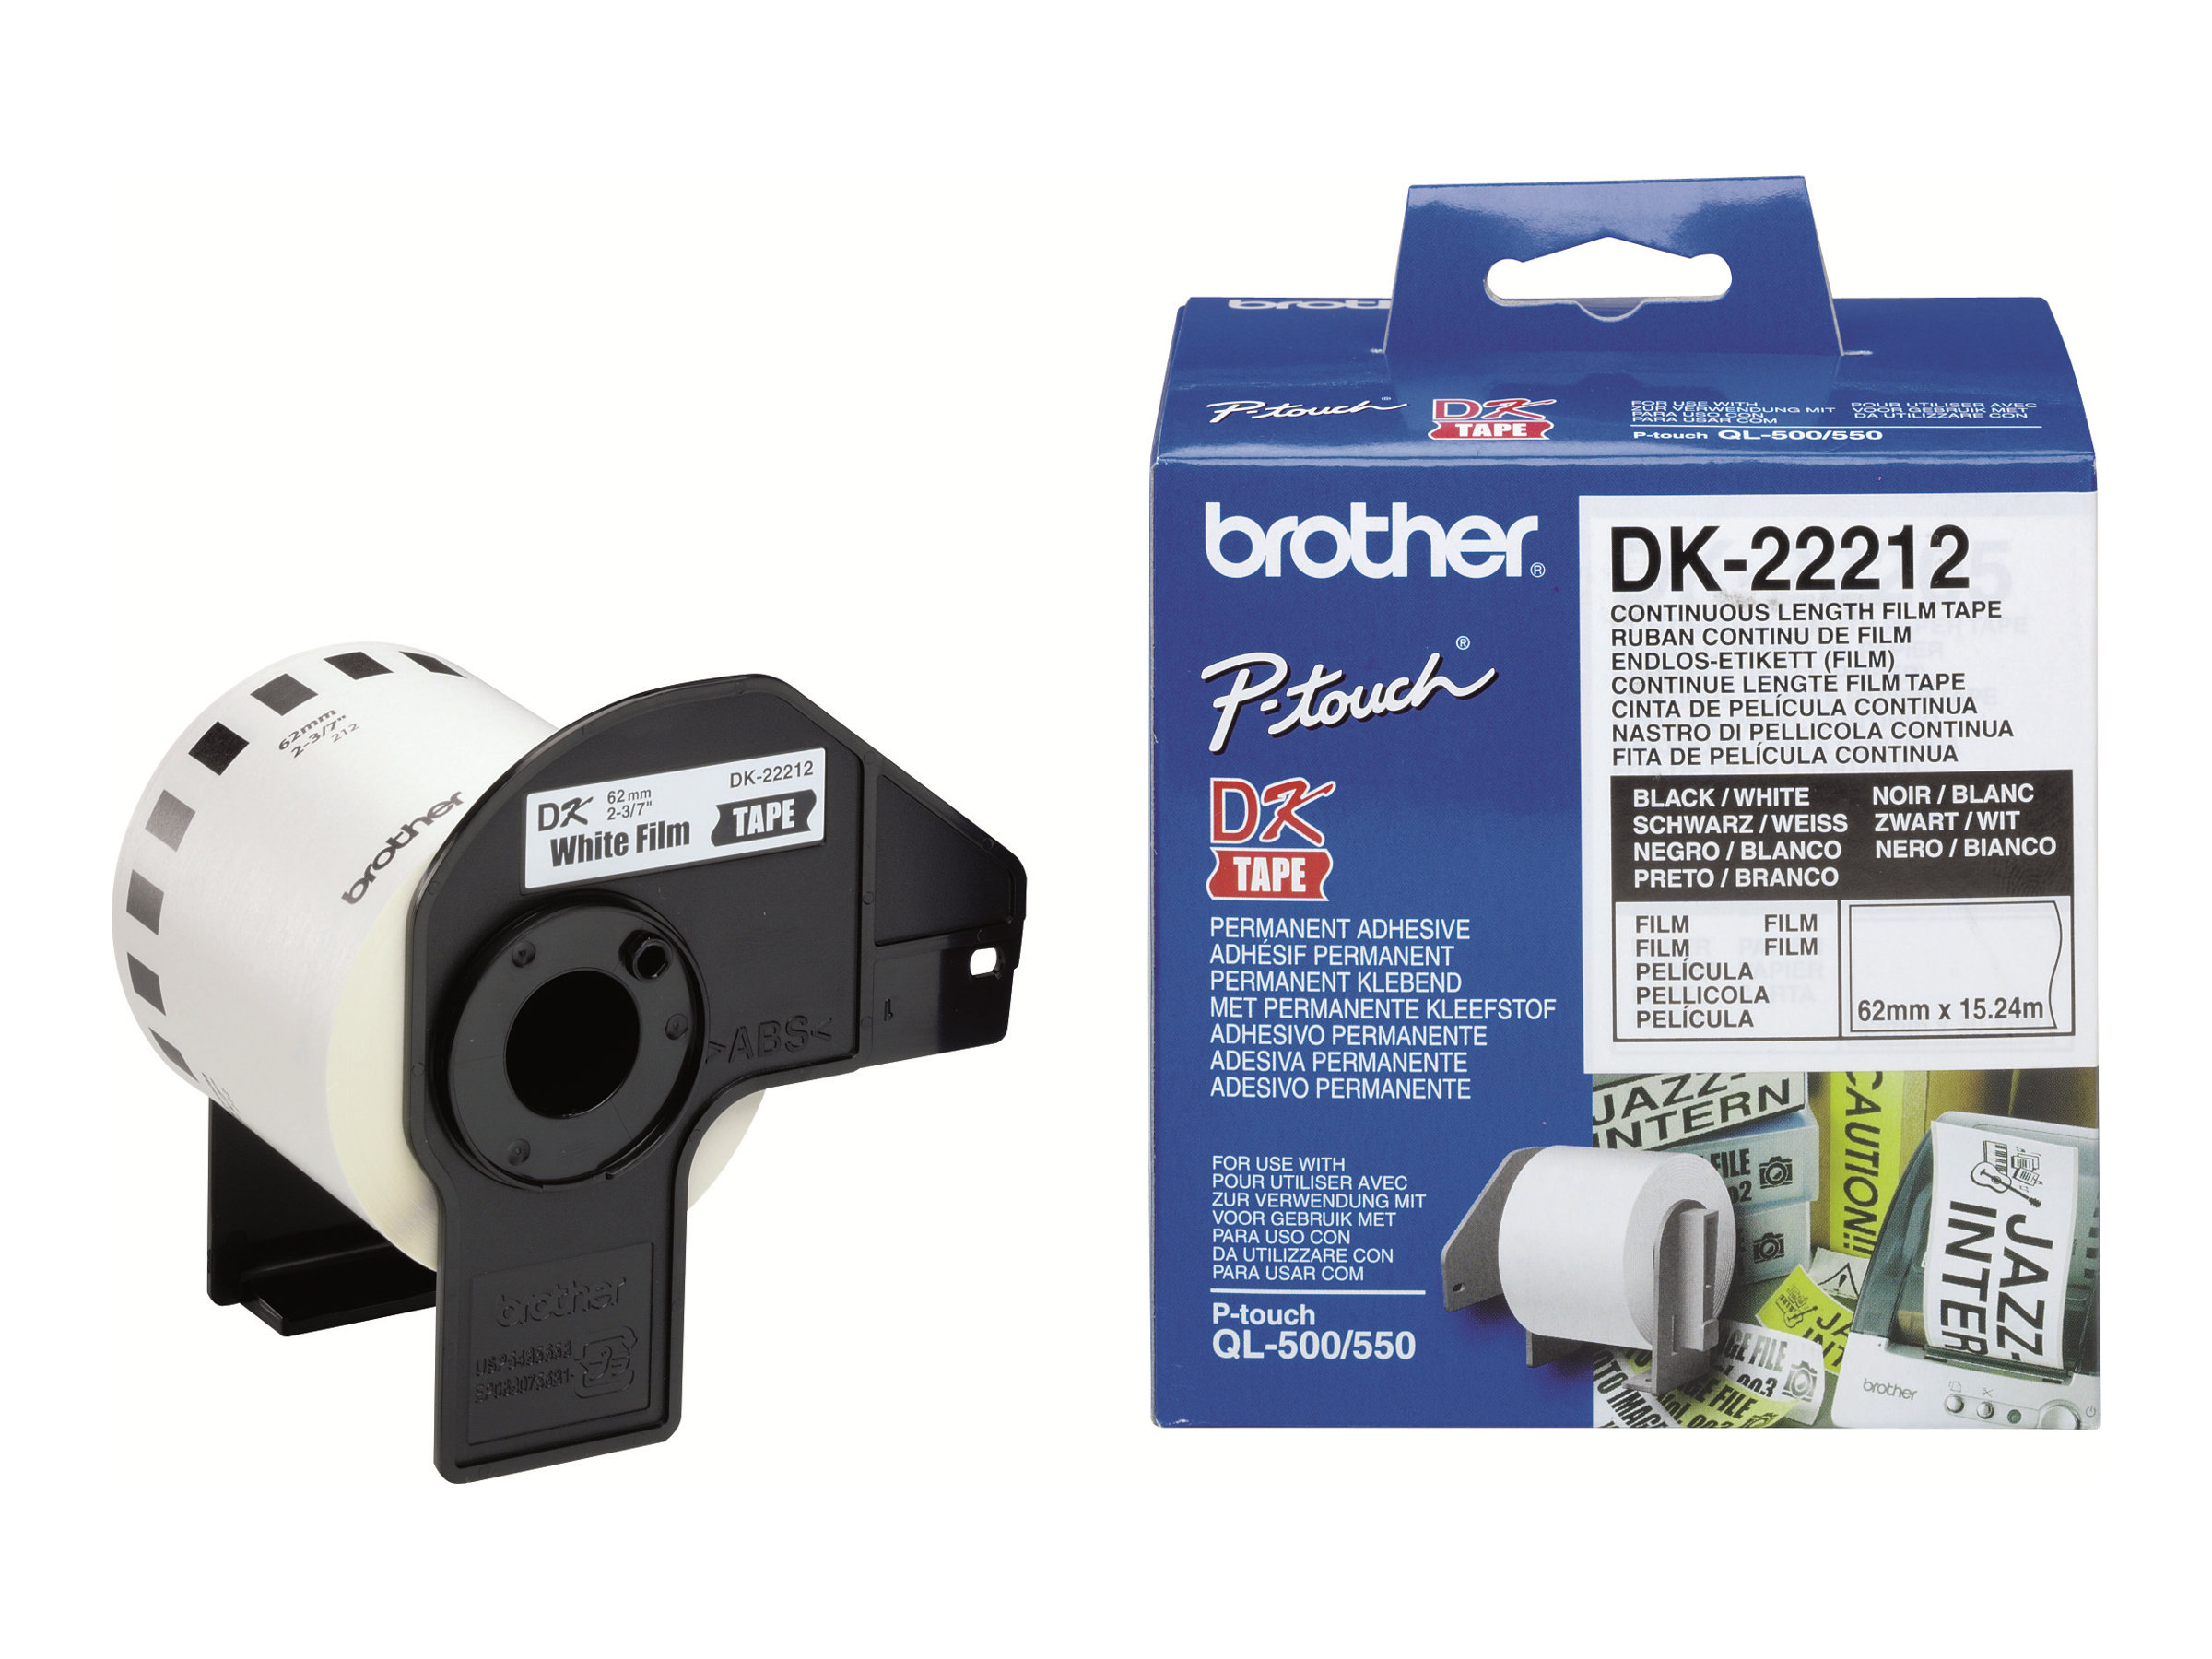 Brother DK-22212 - Permanenter Klebstoff - weiß - Rolle (6,2 cm x 15,2 m) Band - für Brother QL-1050, QL-500, QL-550, QL-560, QL-650, QL-700, QL-710, QL-720, QL-820